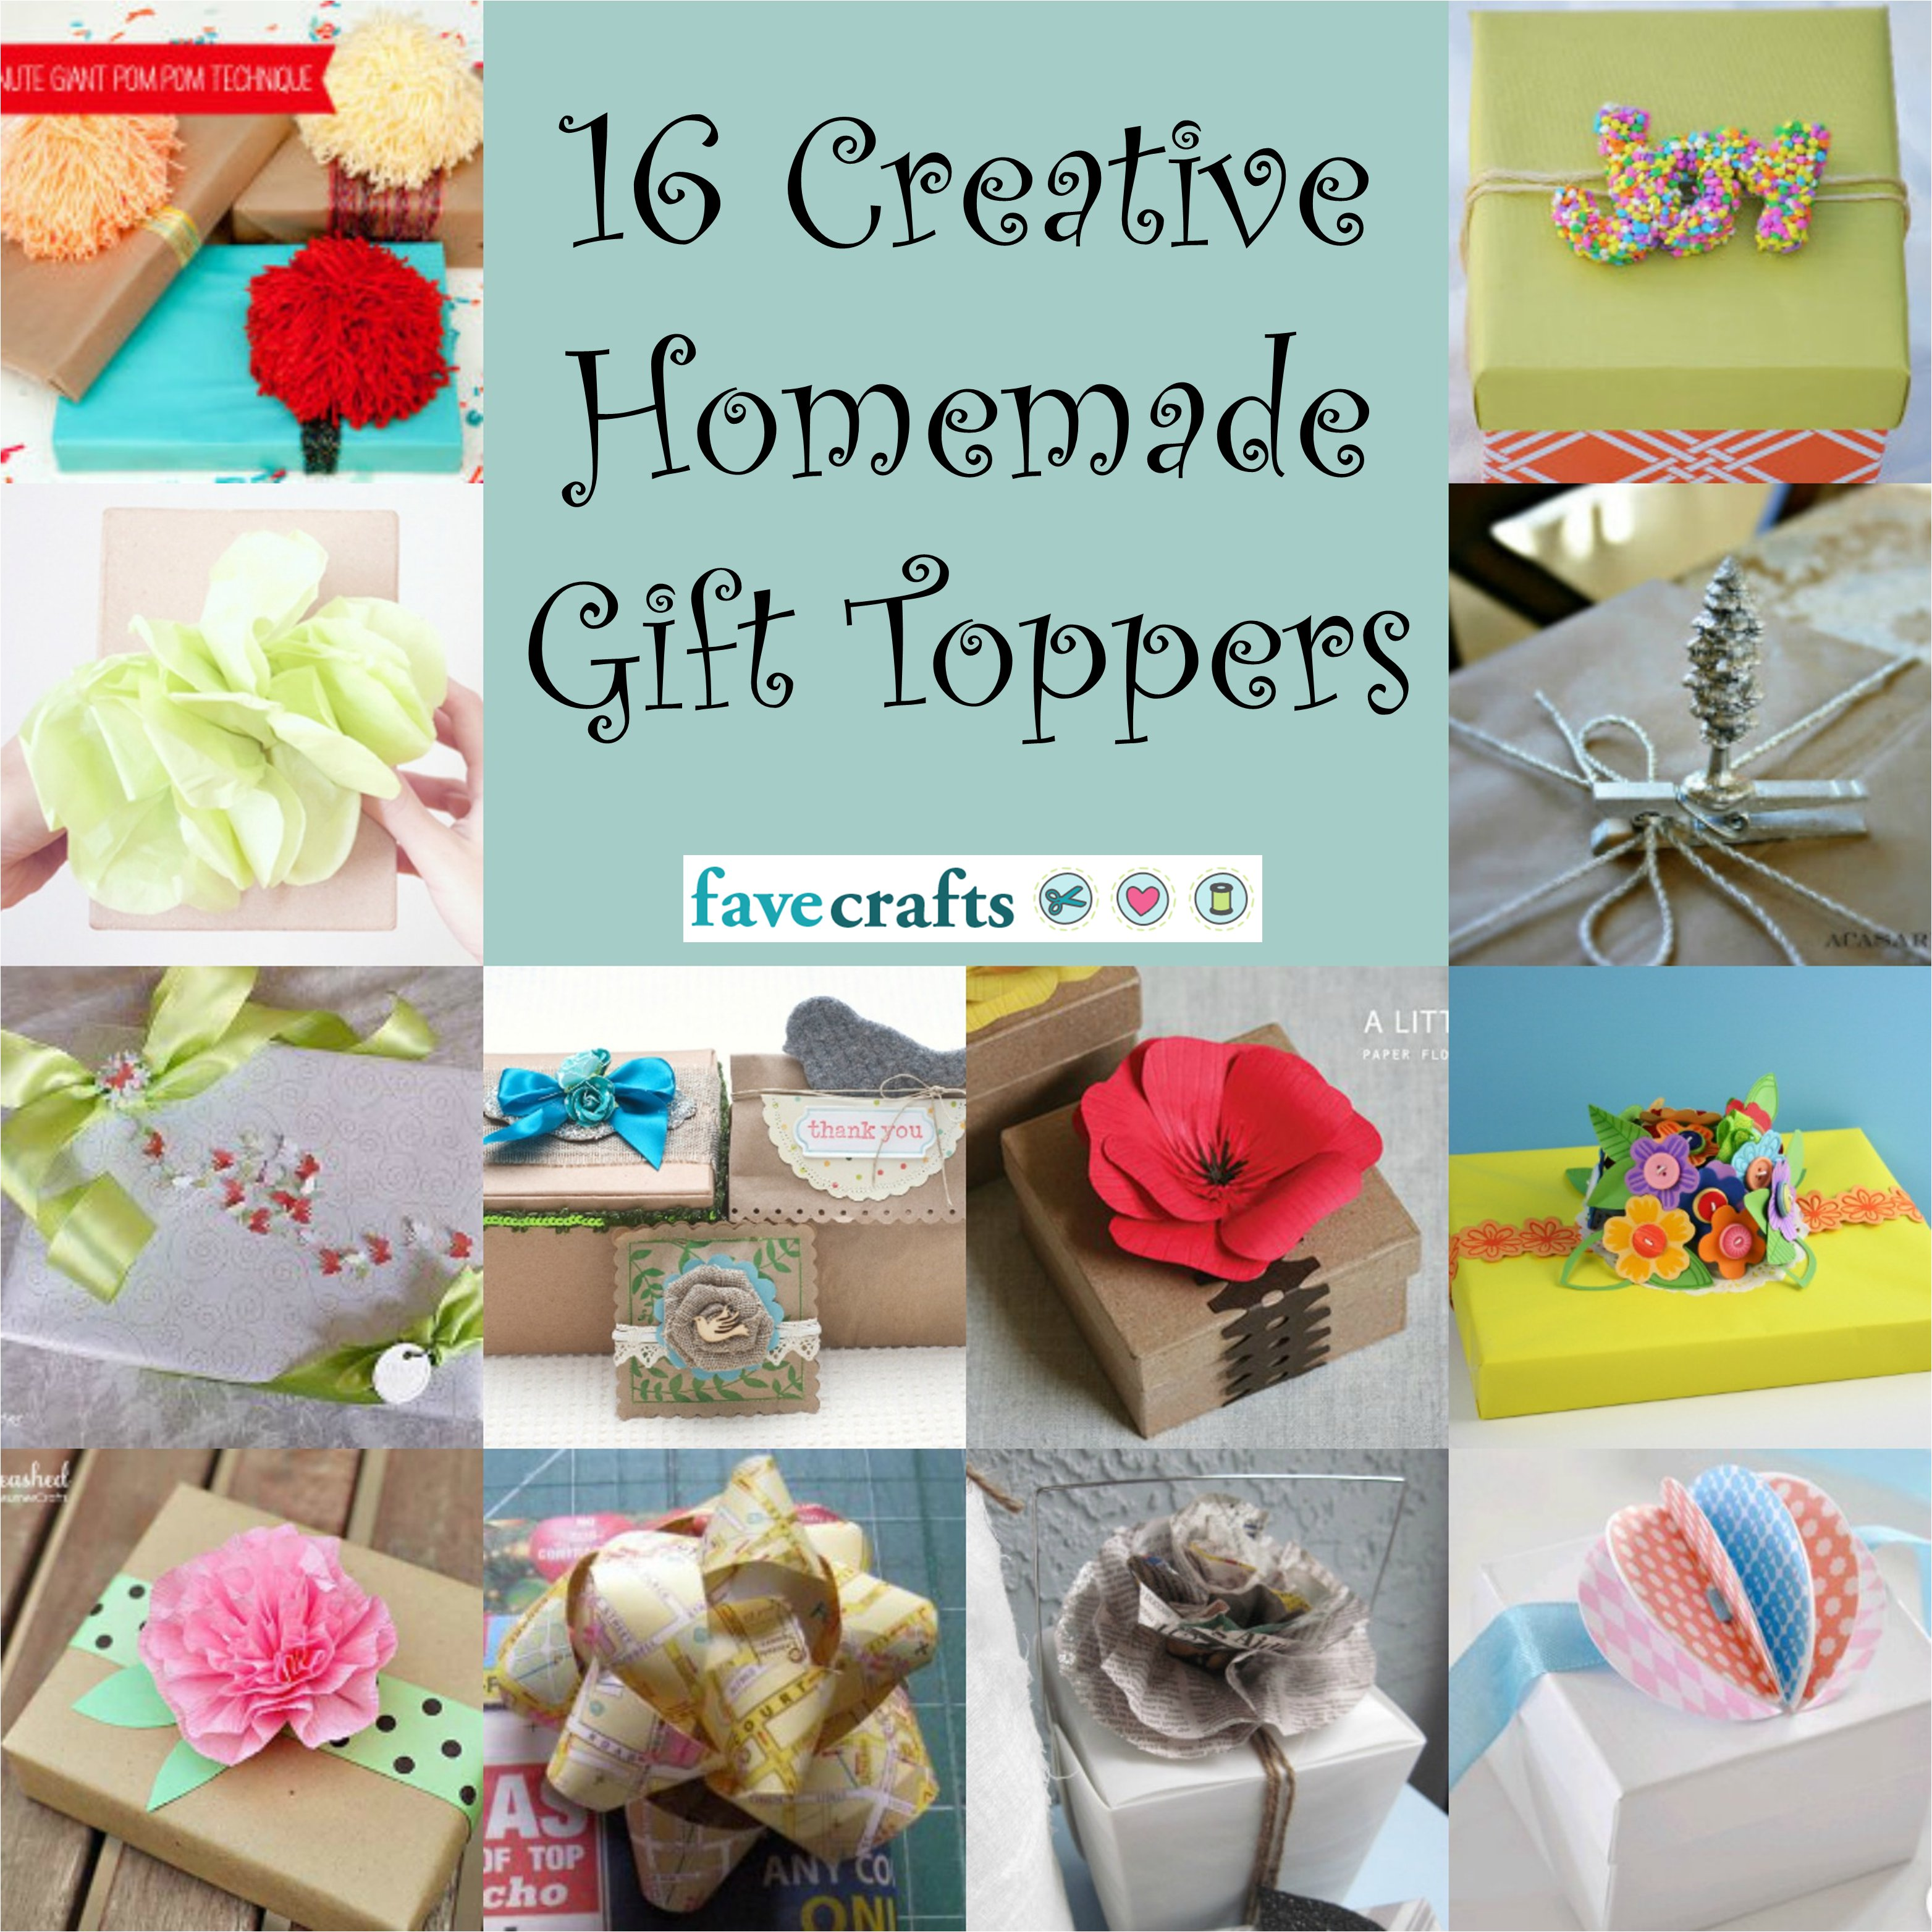 16-creative-homemade-gift-toppers